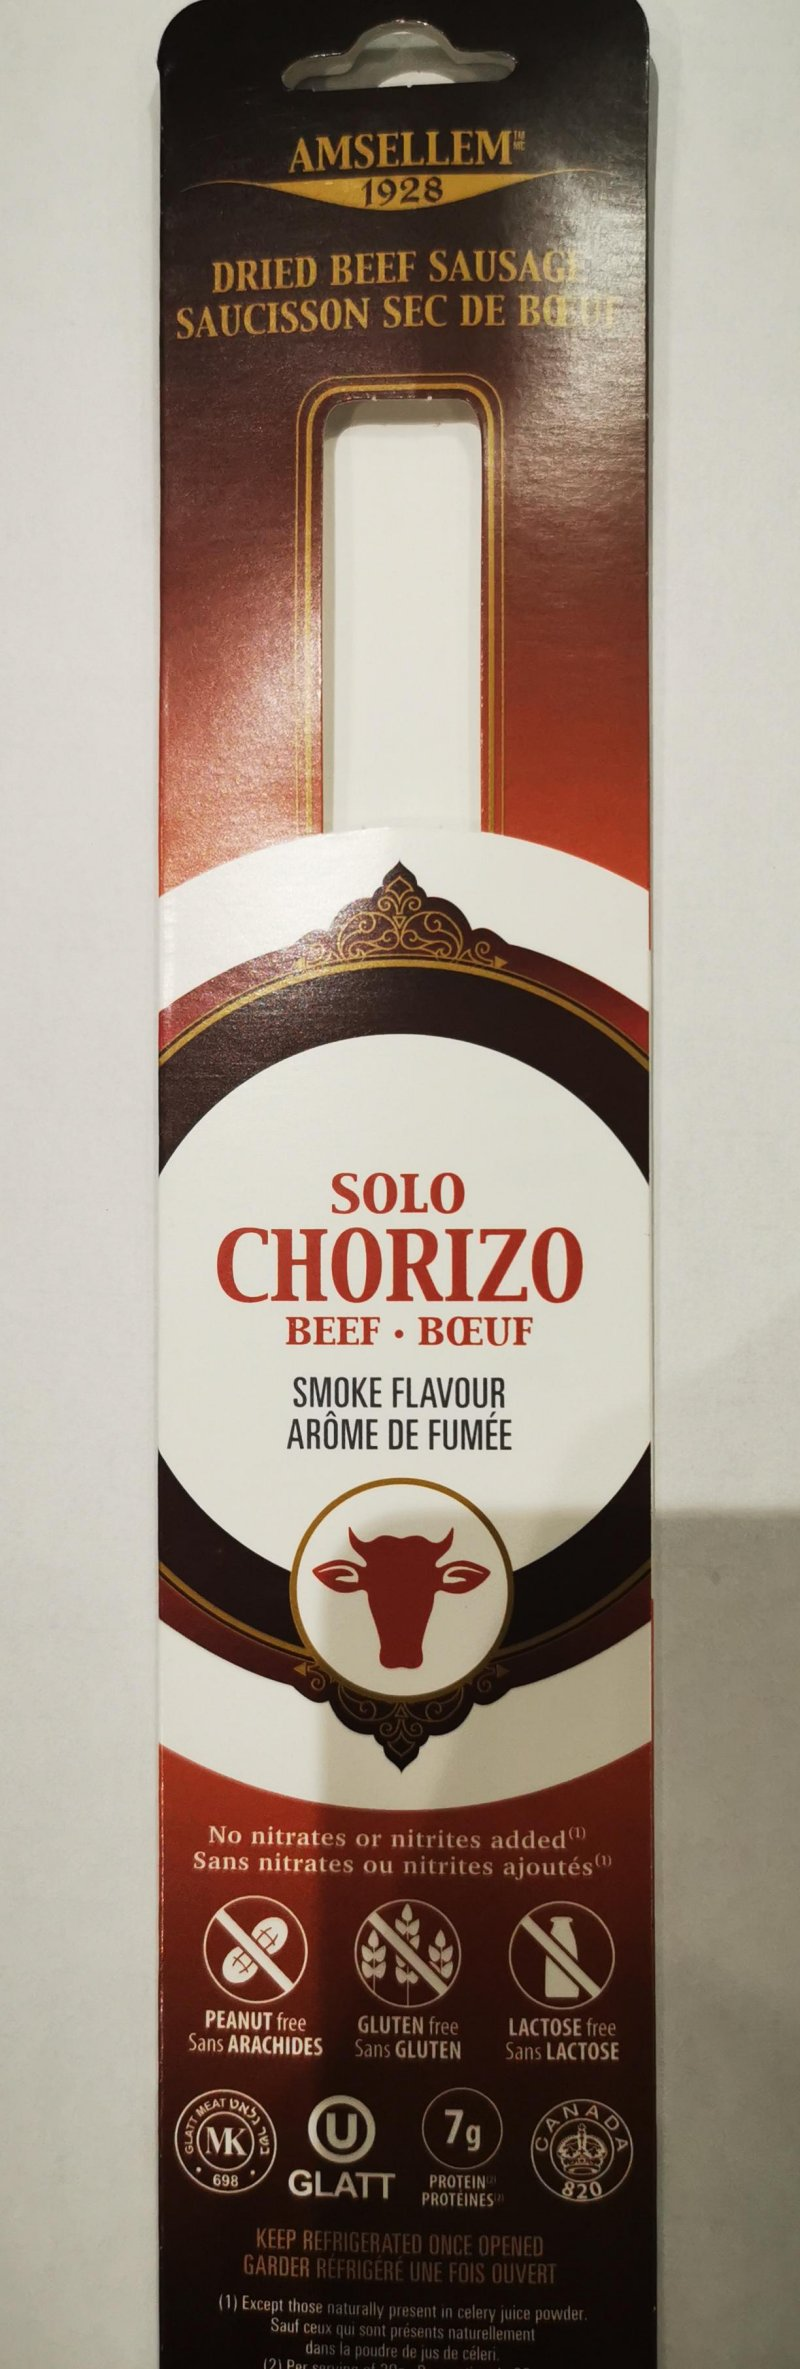 Amsellem - Solo Chorizo – Dried Beef Sausage